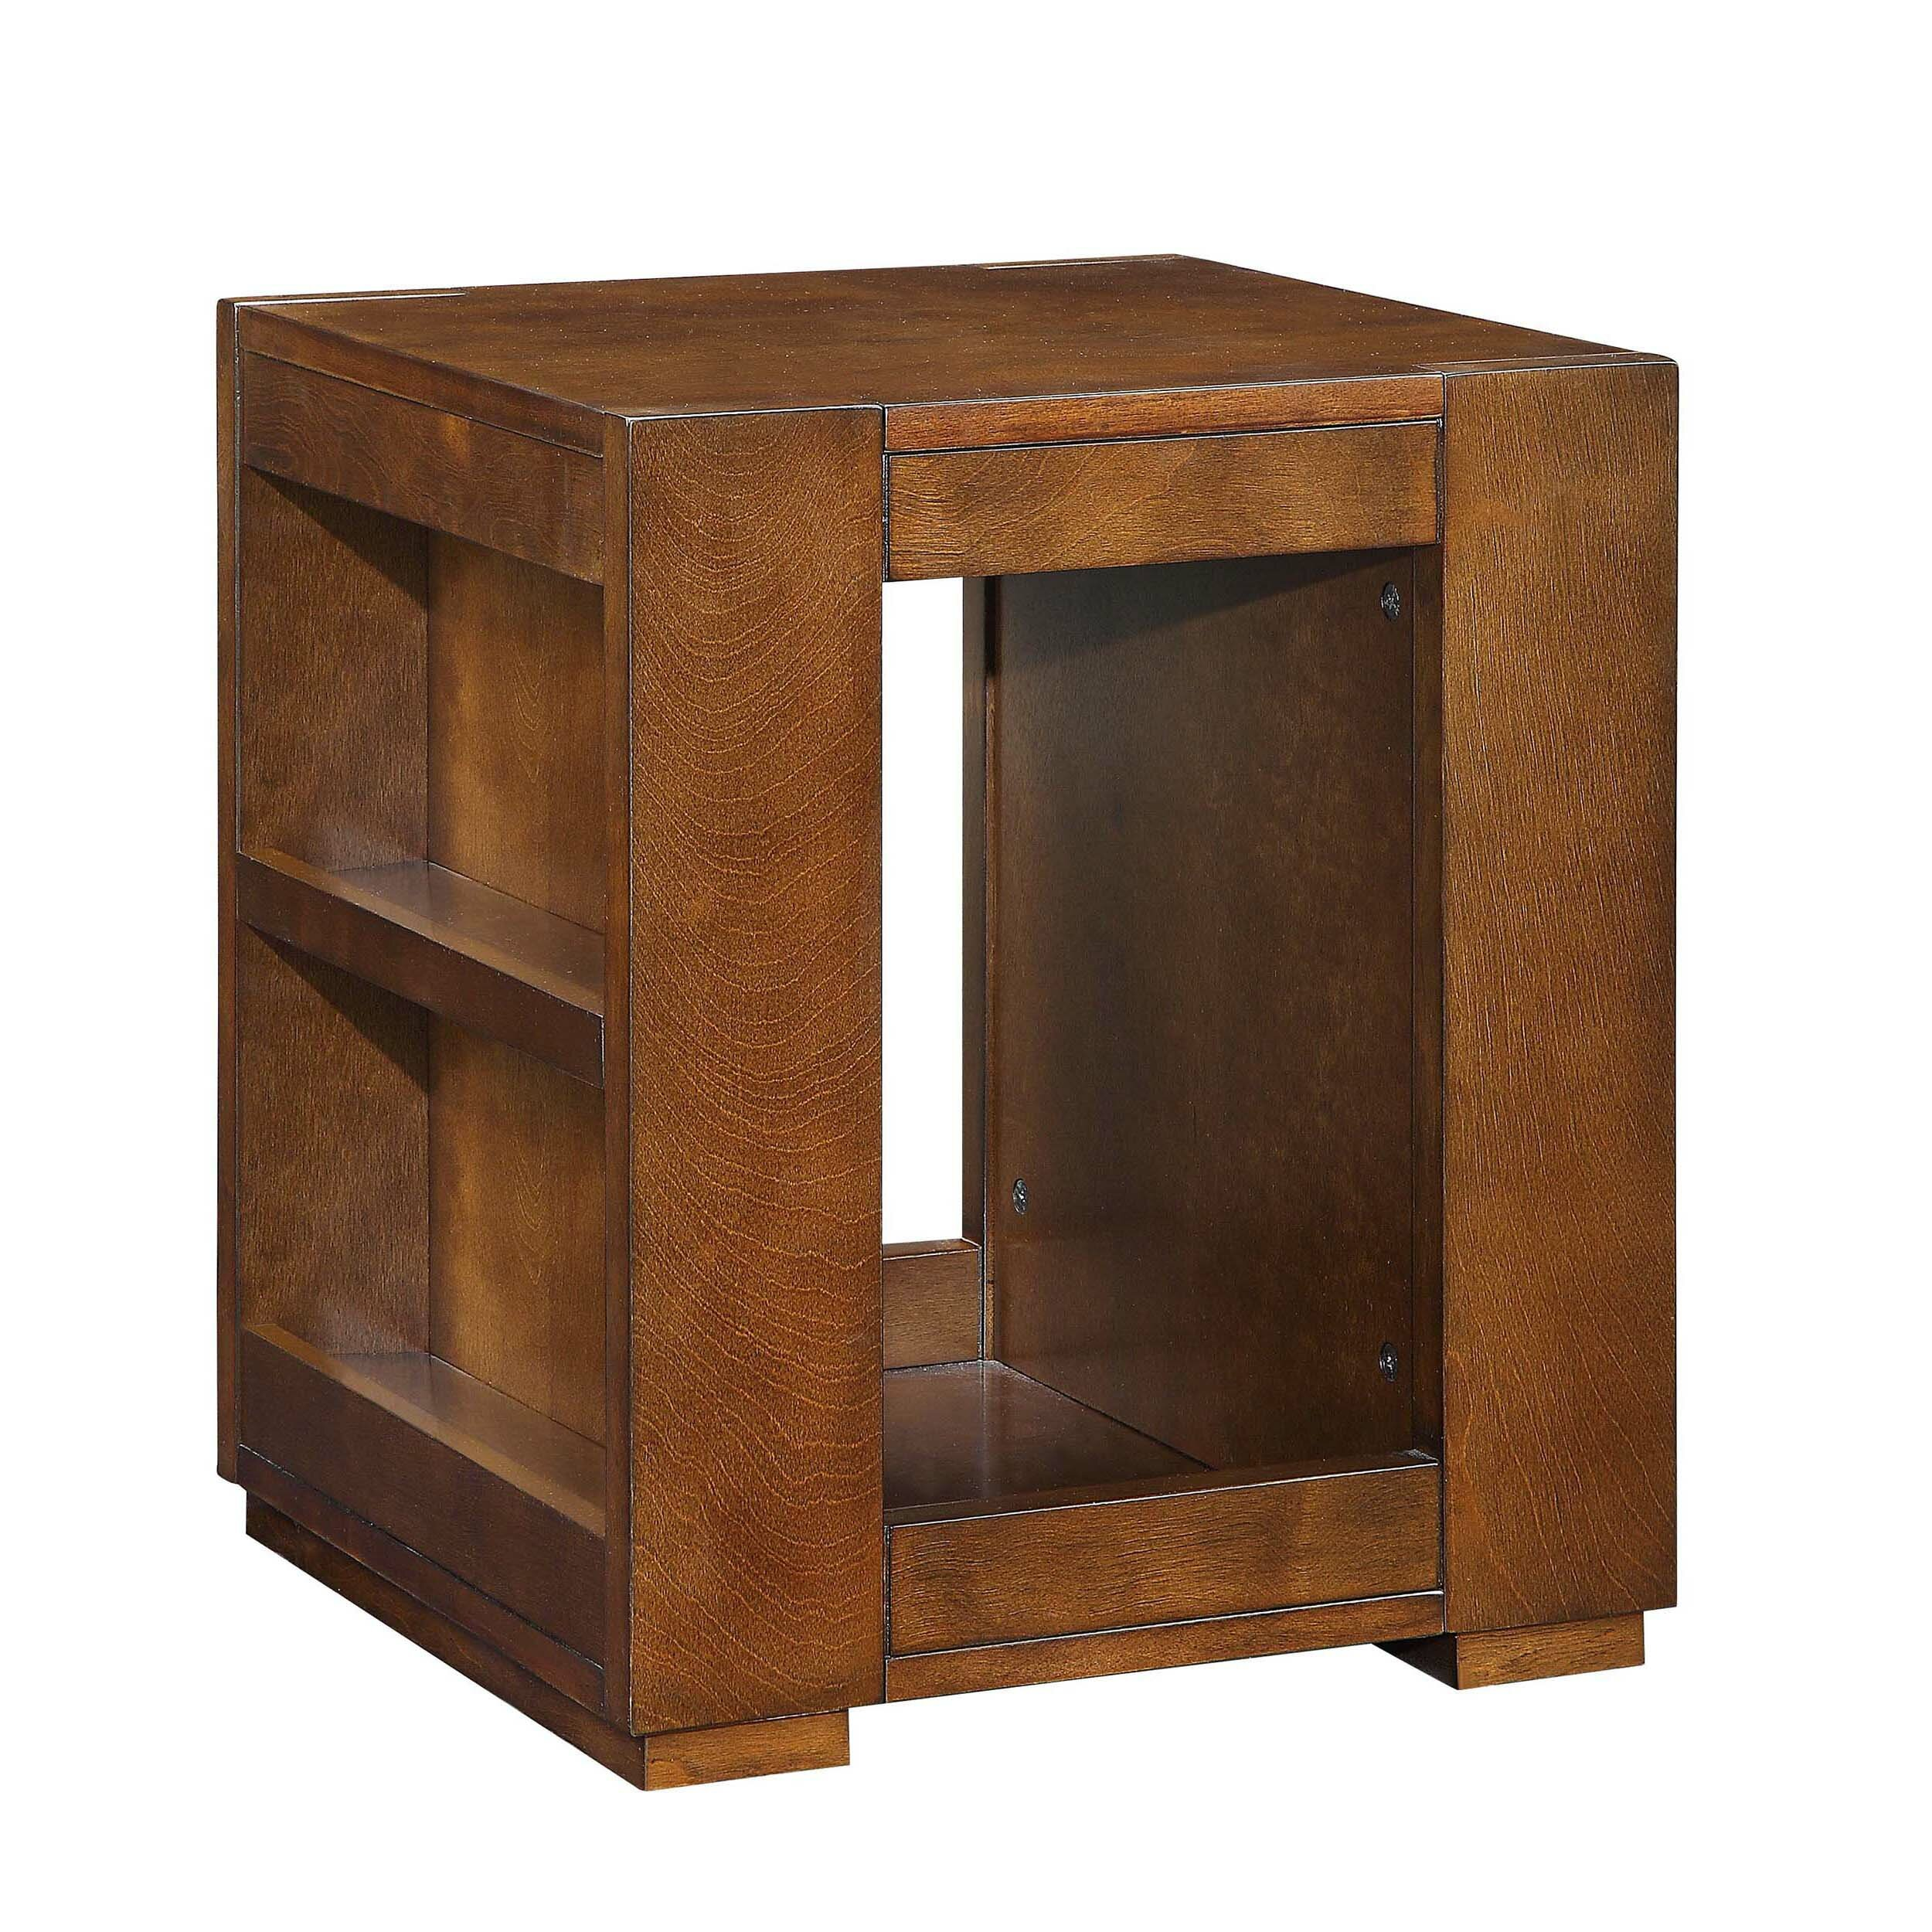 Millwood Pines Tarrytown Side Storage Bookshelf Wooden End Table With